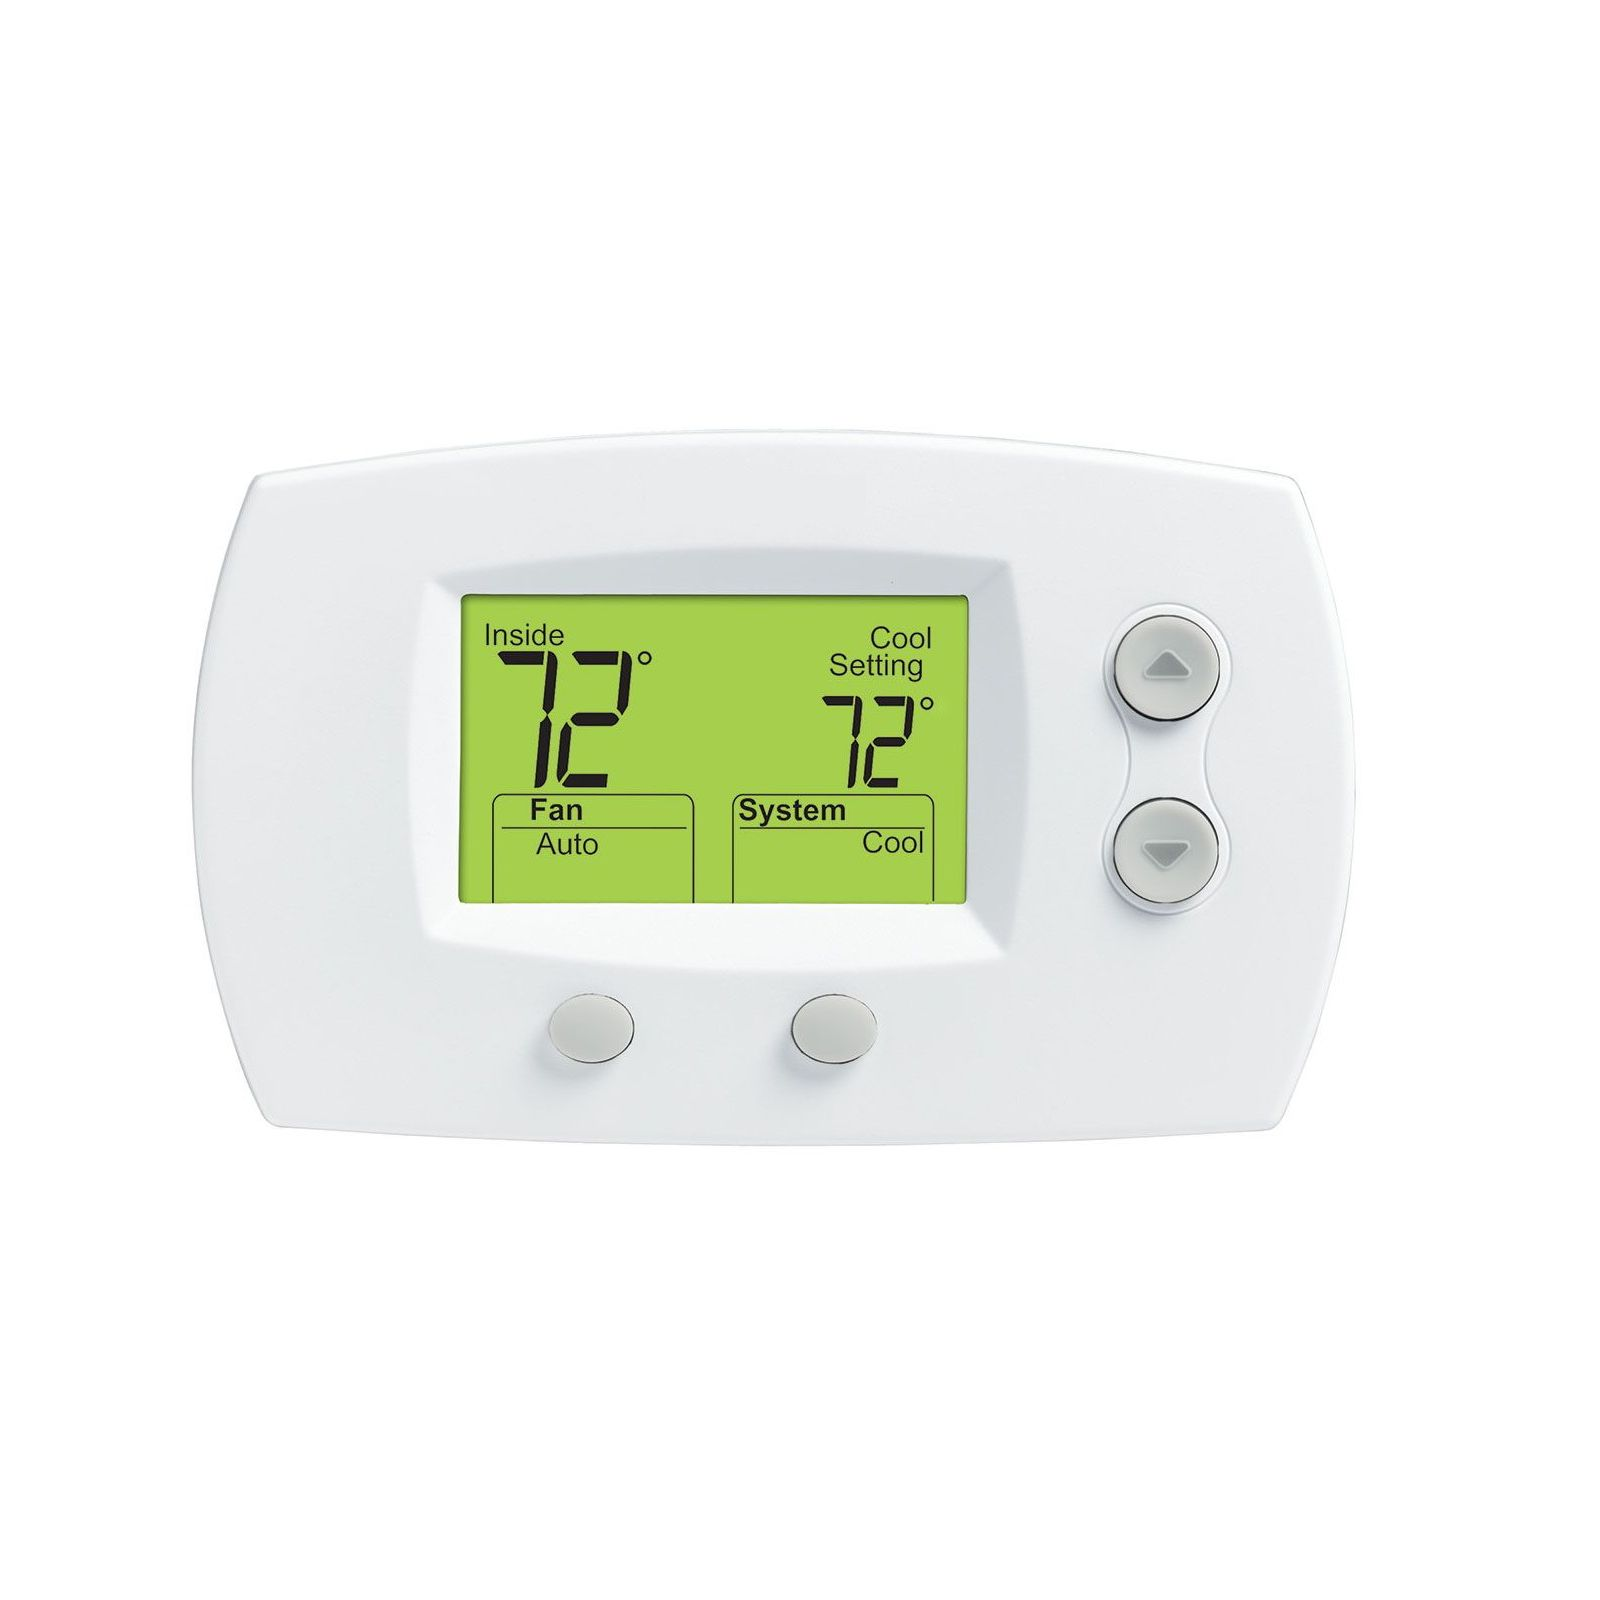 Honeywell th5220d1003 focuspro 5000 digital non programmable view full size in new tab fandeluxe Images